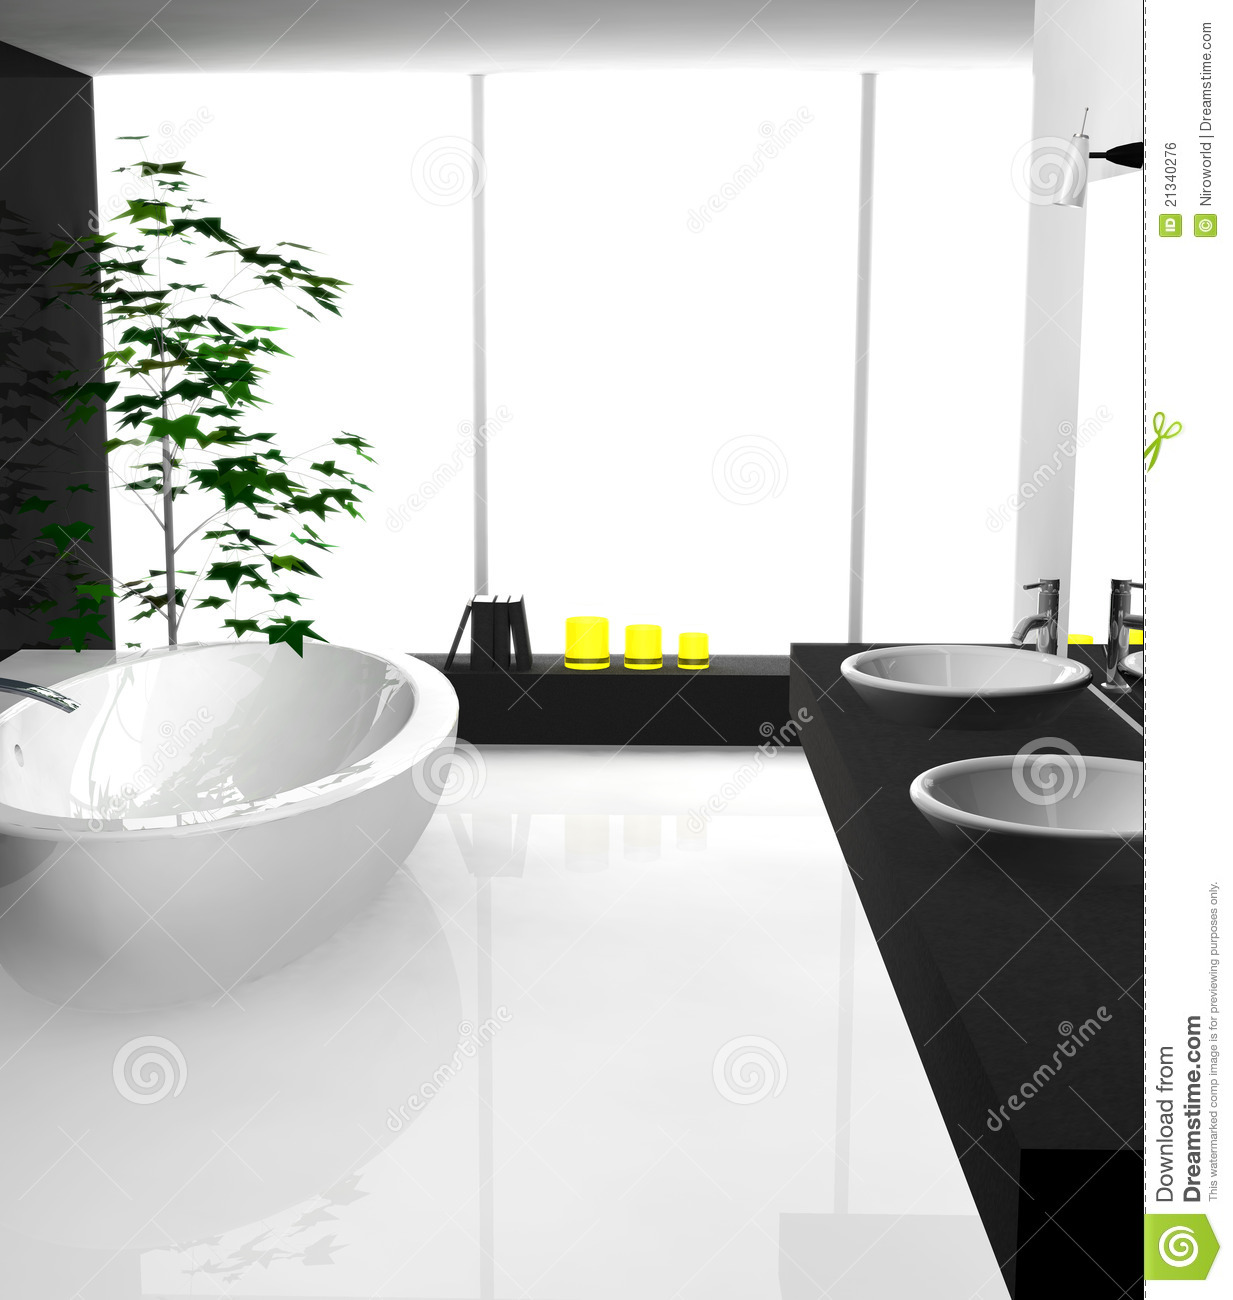 Modern Bathroom stock illustration. Illustration of designer - 21340276